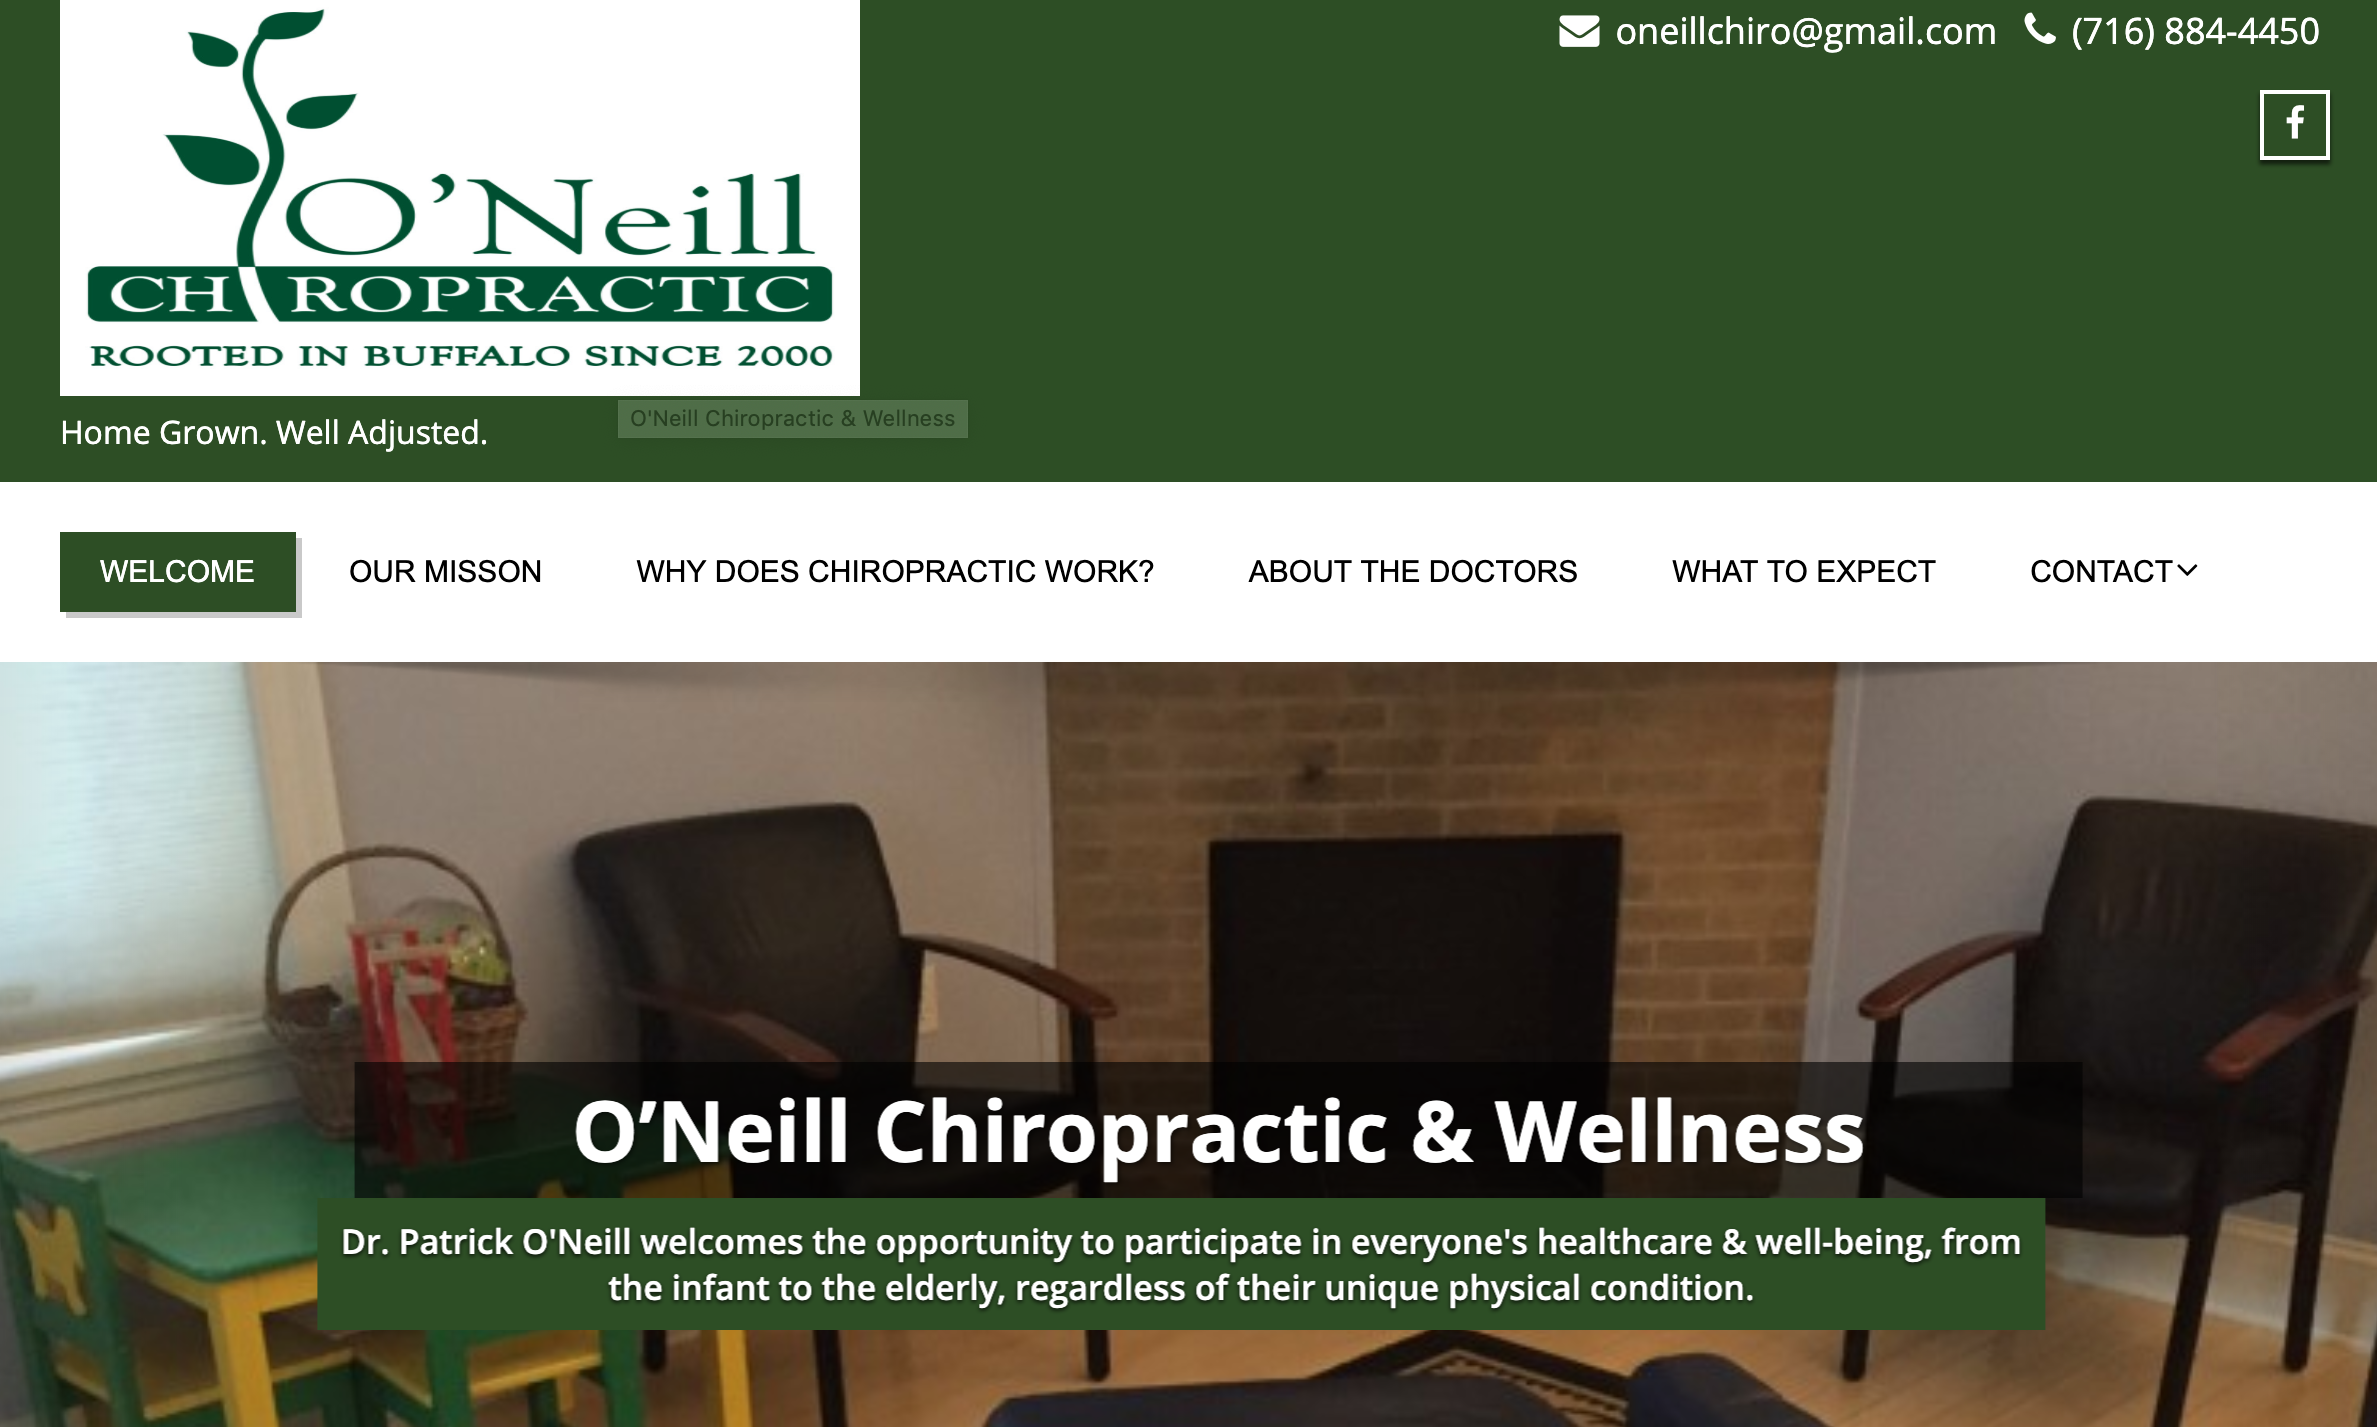 Chiropractic services (webster certified)